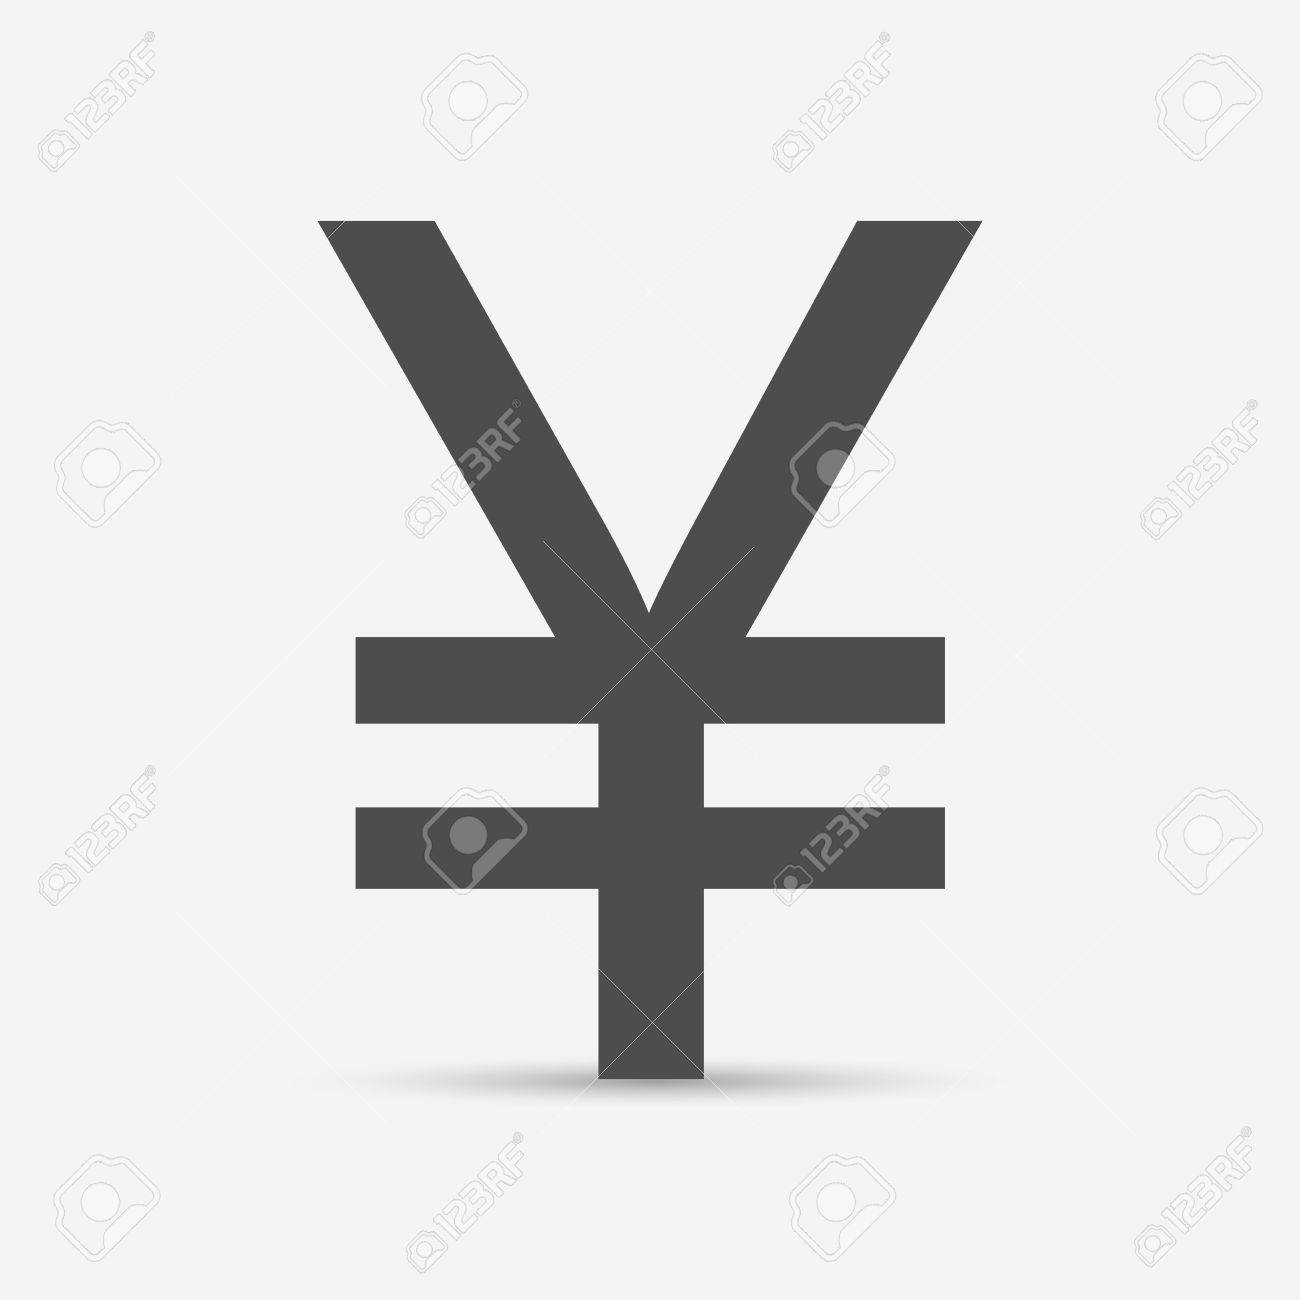 Japanese yen or chinese yuan currency symbol royalty free cliparts japanese yen or chinese yuan currency symbol stock vector 62127602 biocorpaavc Image collections